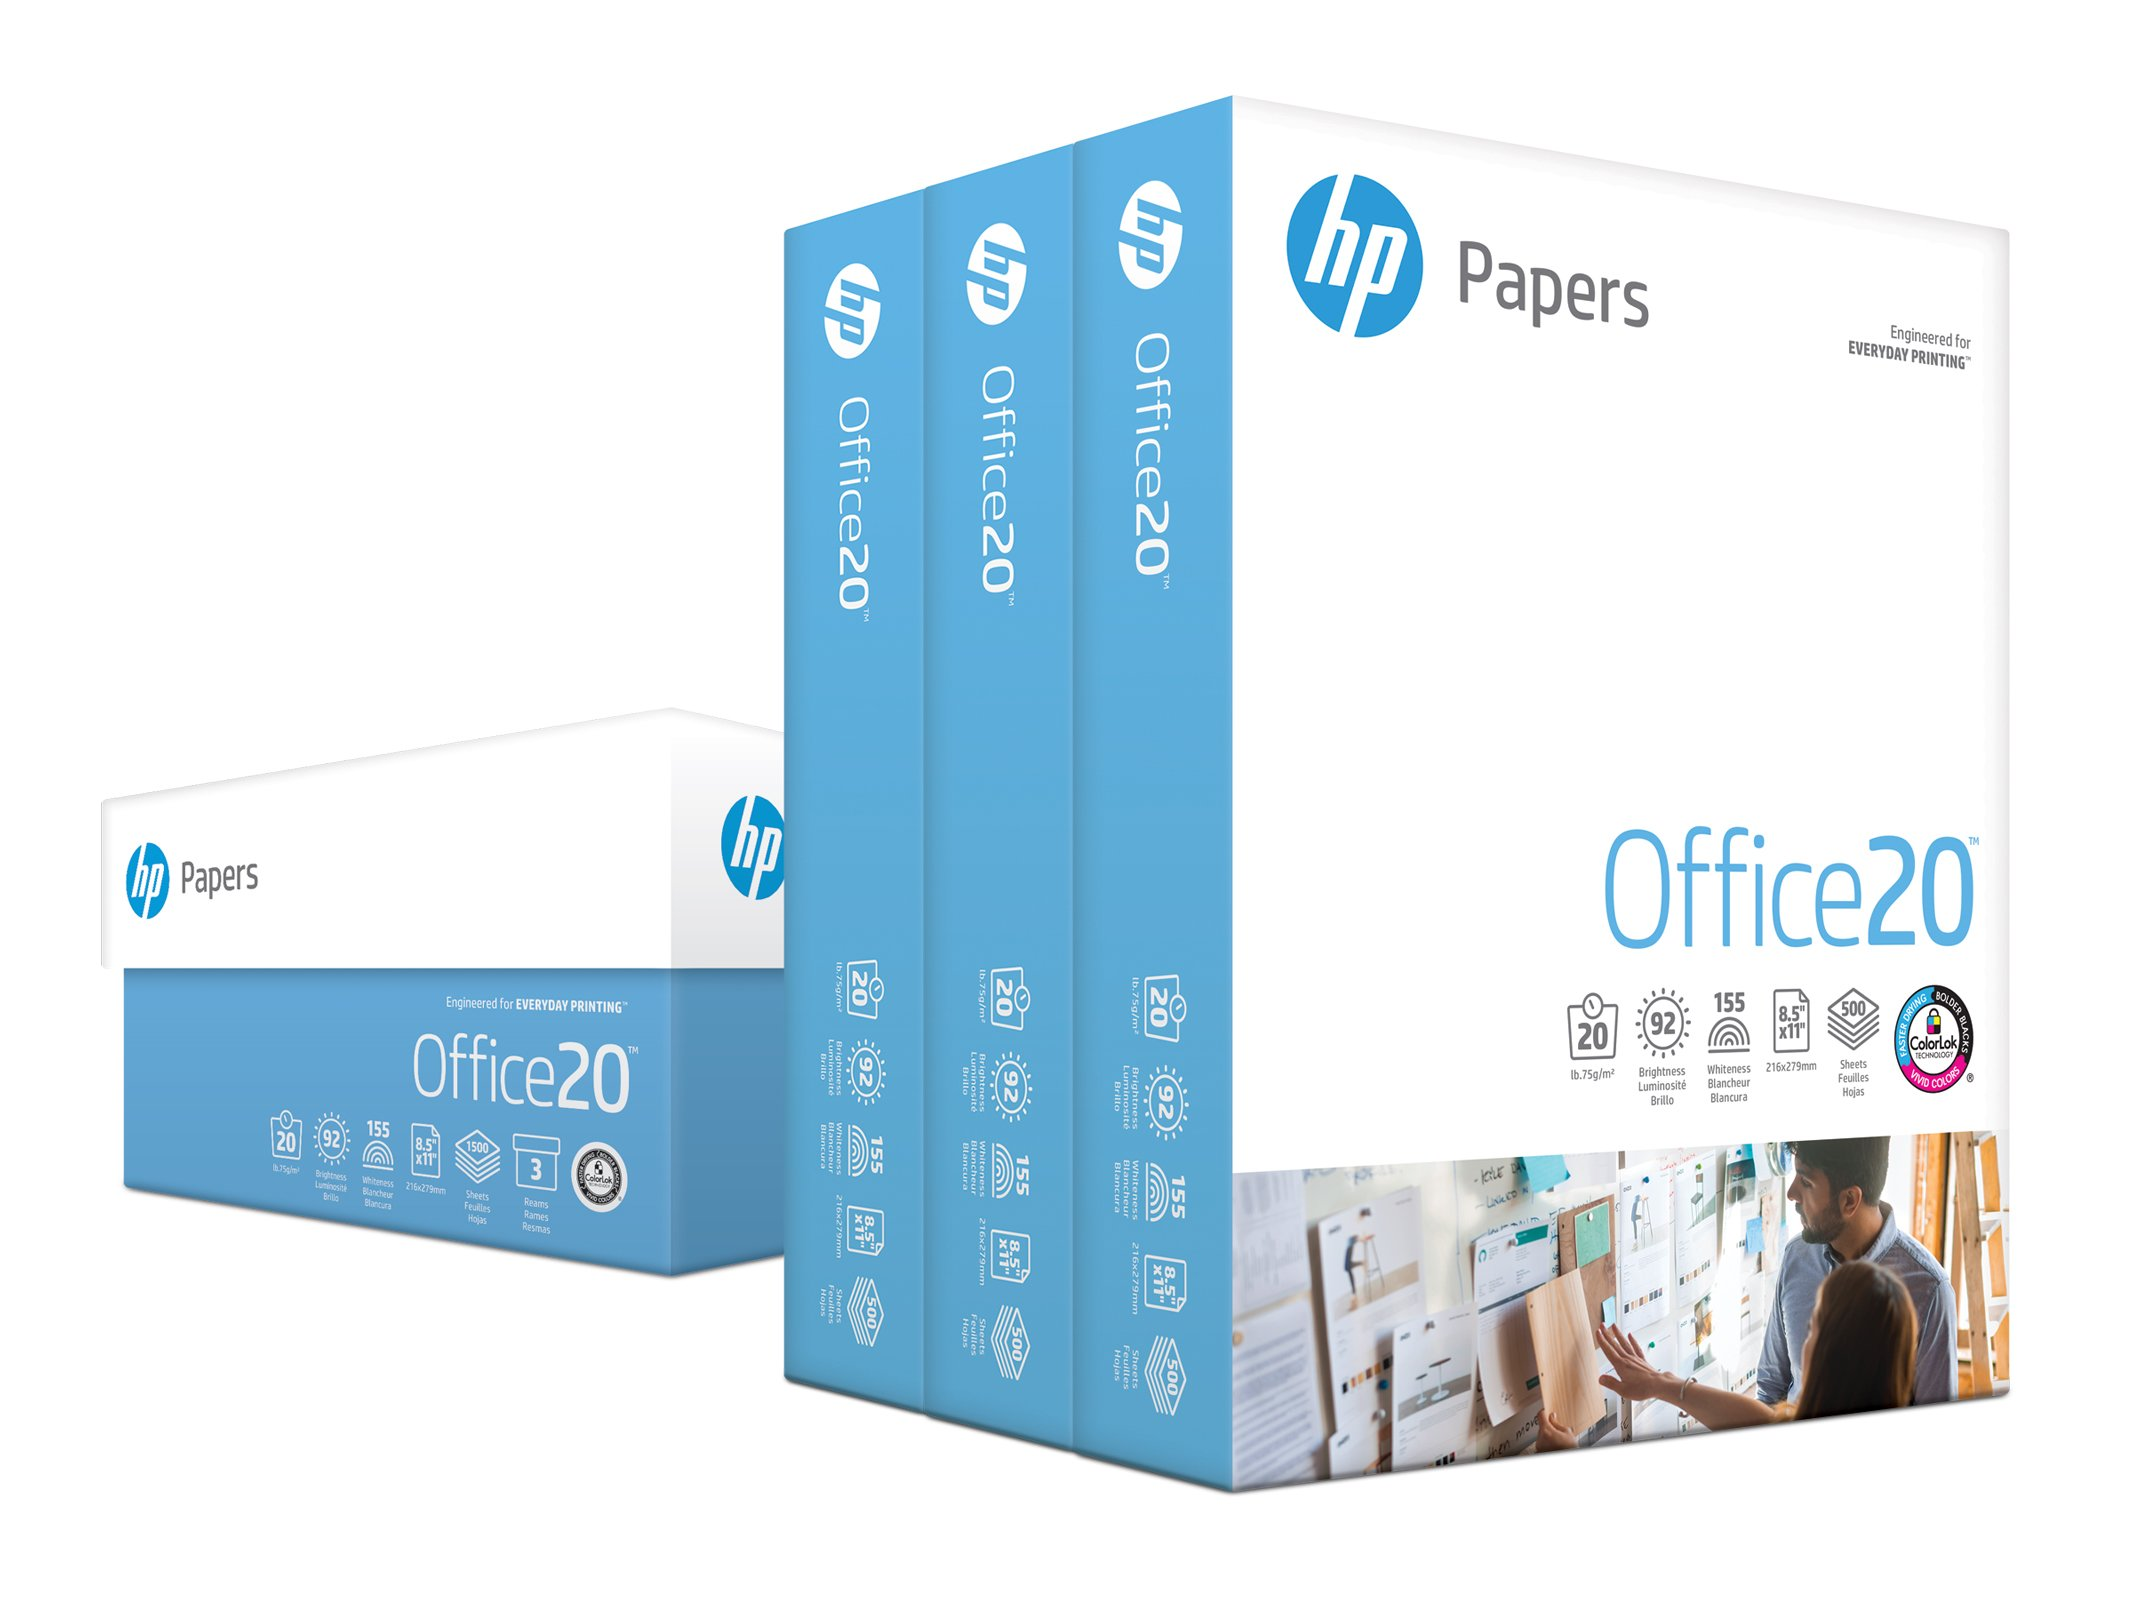 HP Printer Paper, Office20 Paper, 8.5 x 11 Paper, Letter Size, 92 Bright - 3 Ream / 1,500 Sheets (112090C) by HP Paper